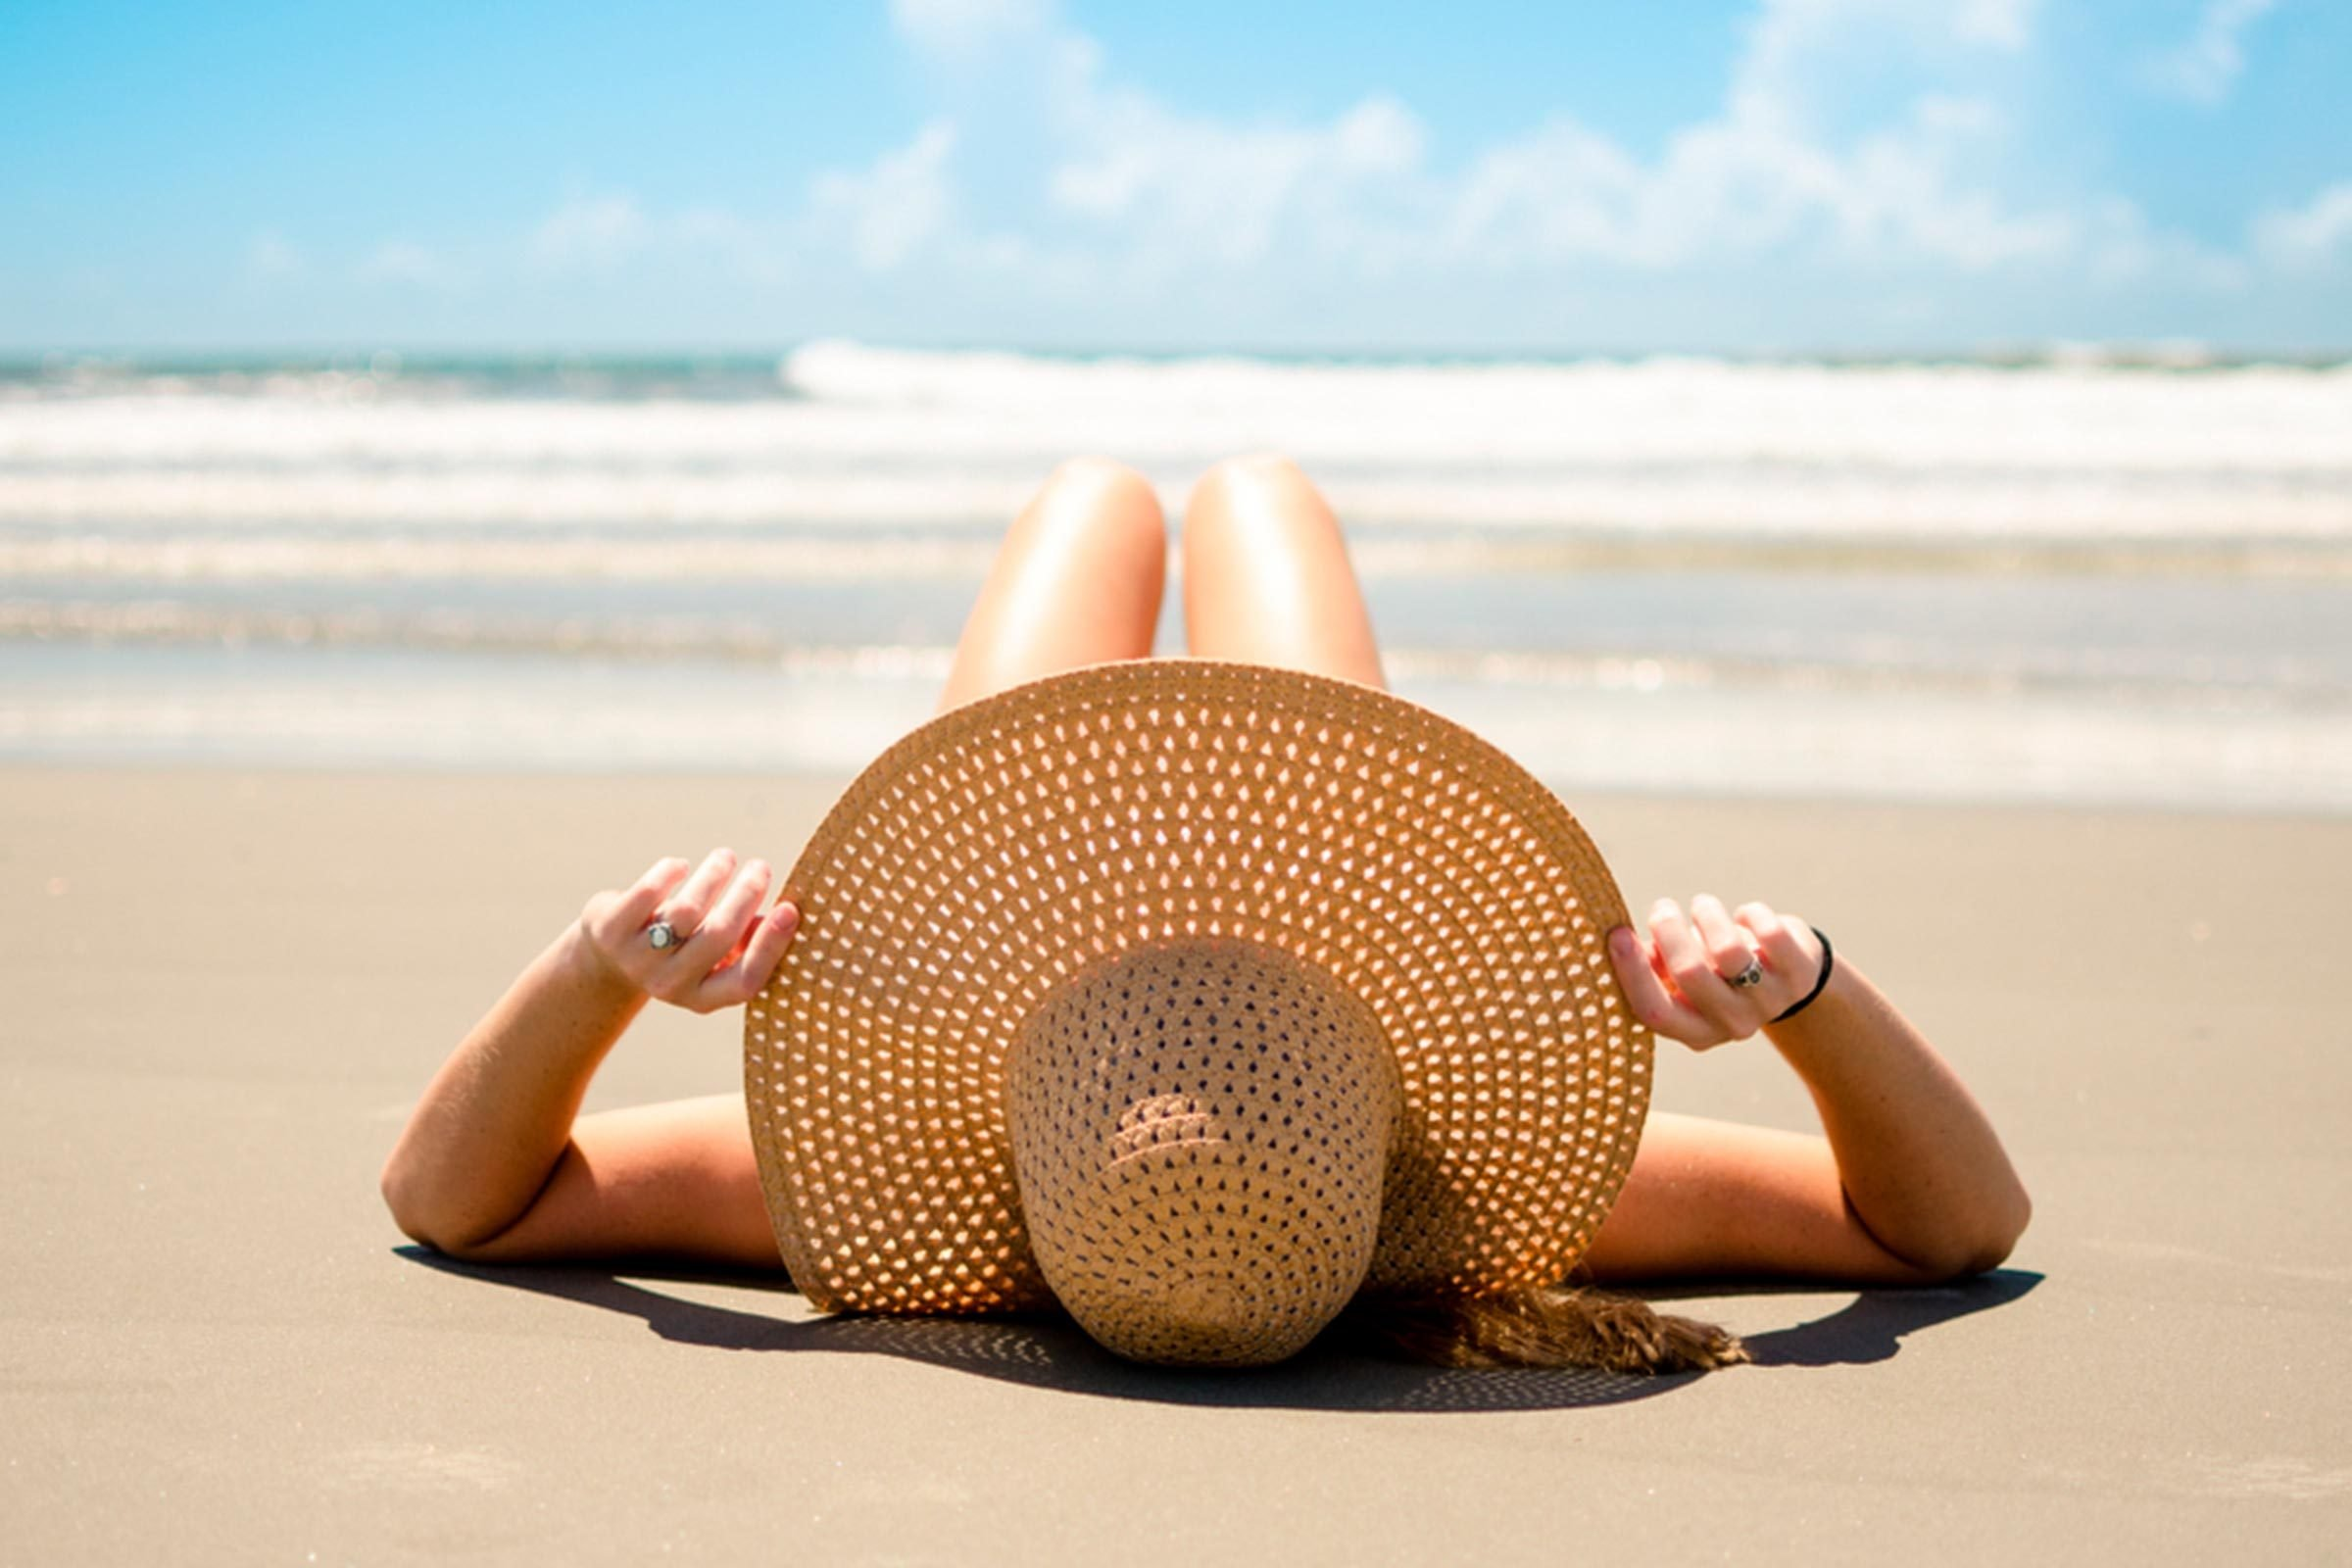 Laying on the beach